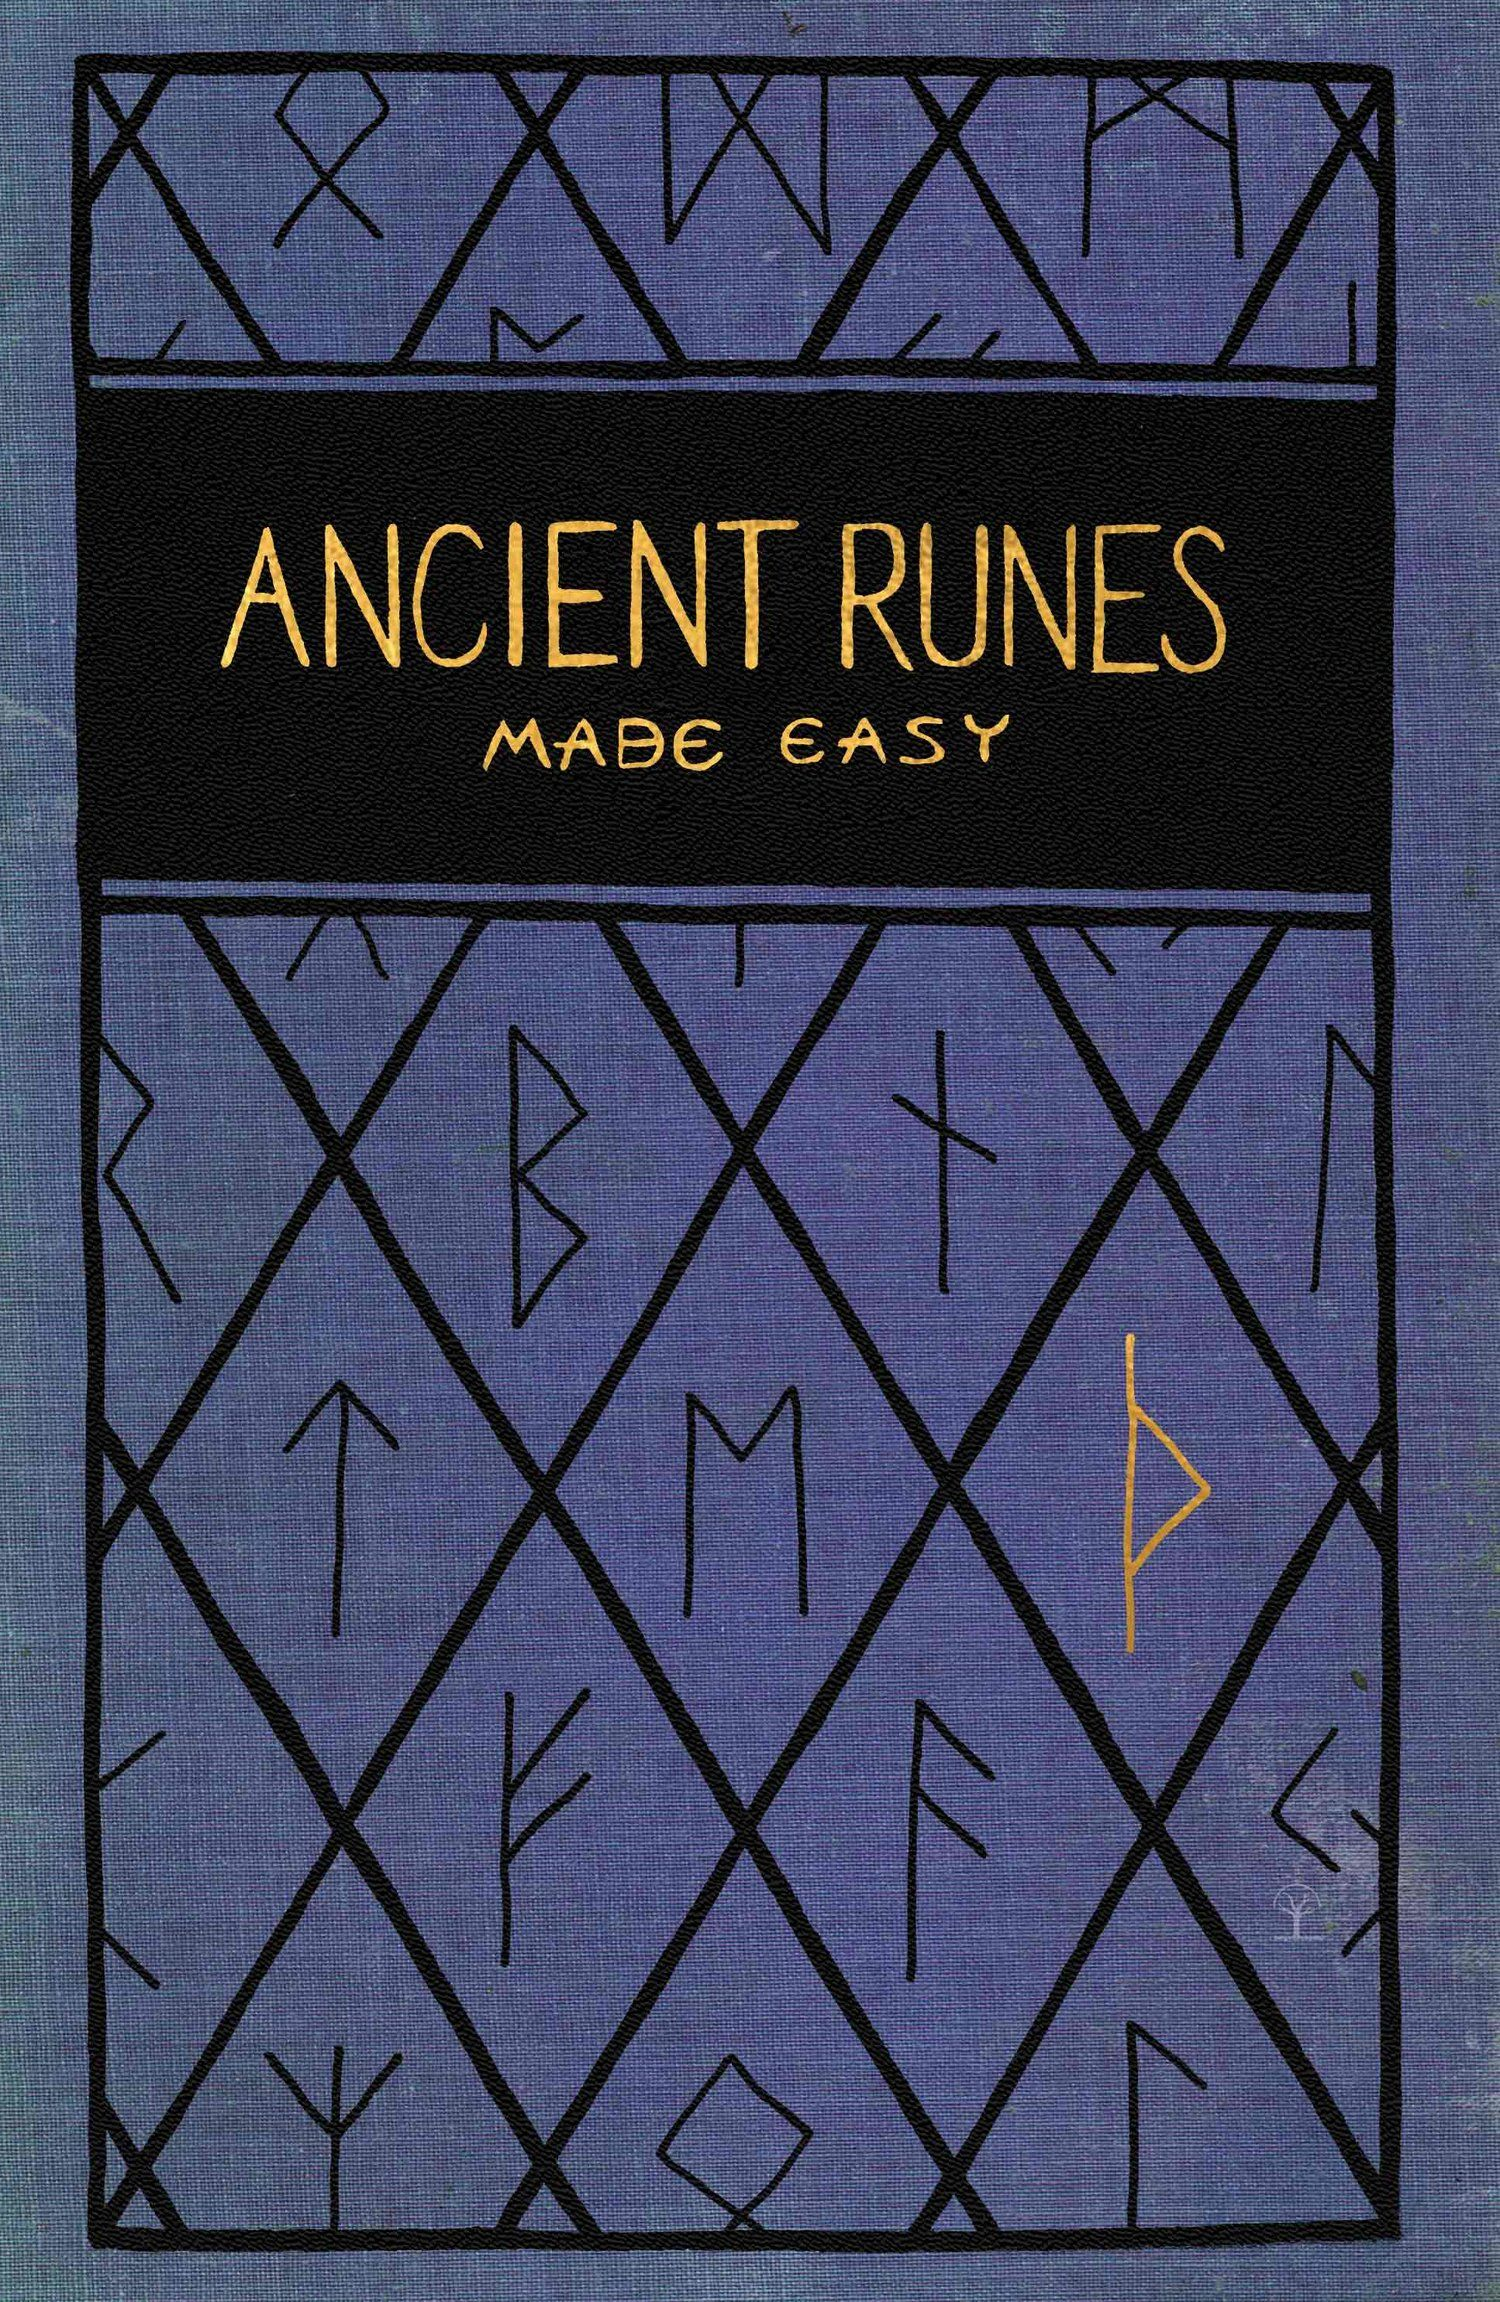 Ancient Runes Made Easy Harry Potter Book Covers Harry Potter School Books Ancient Runes